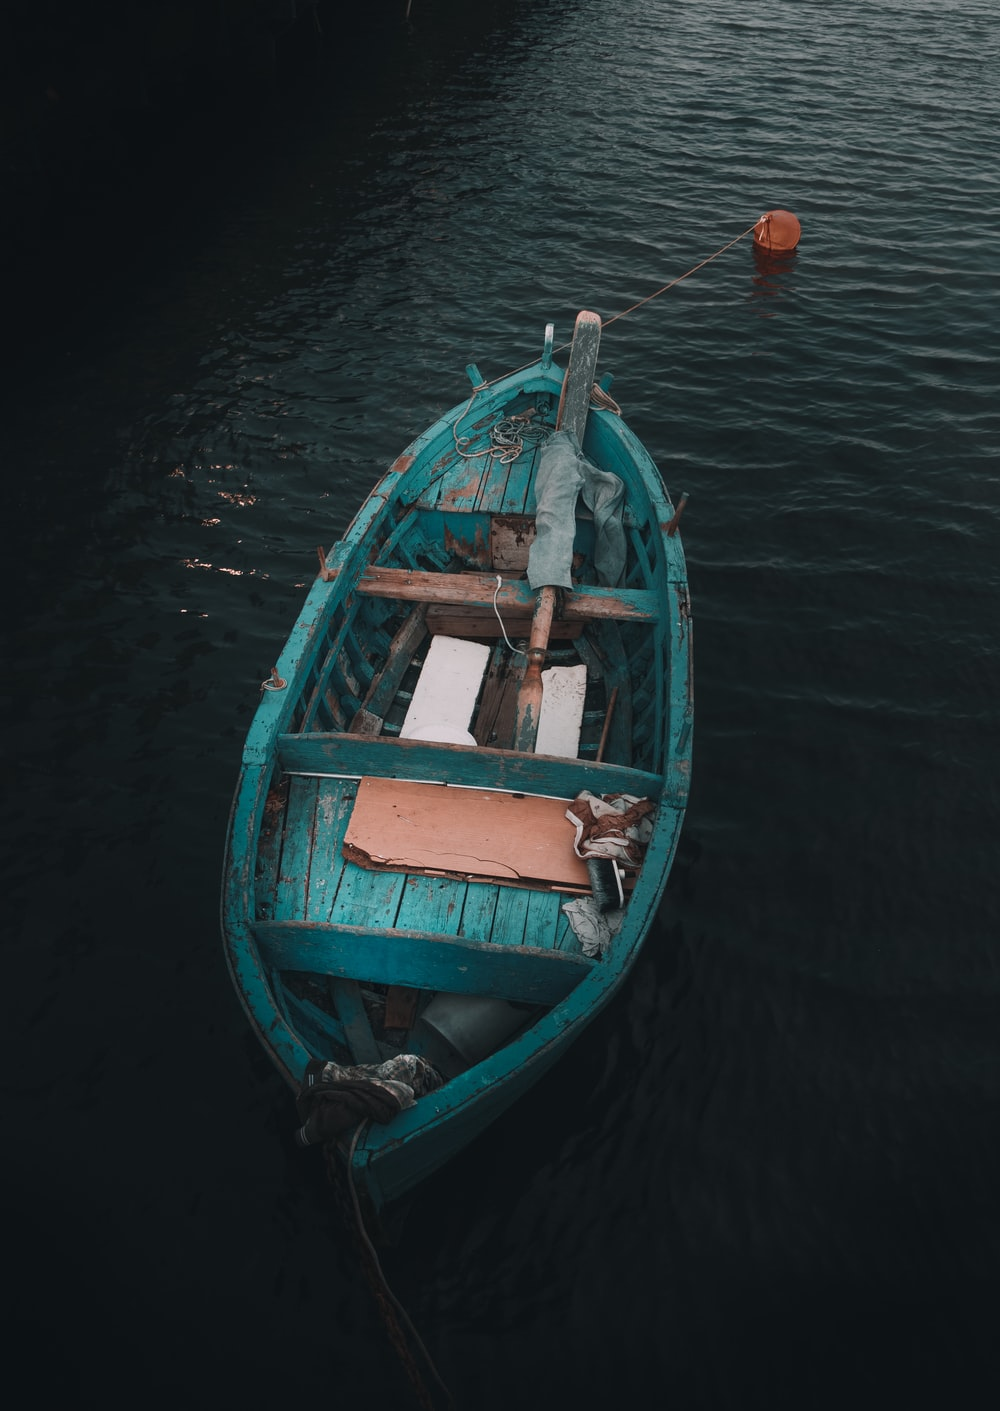 teal wooden boat